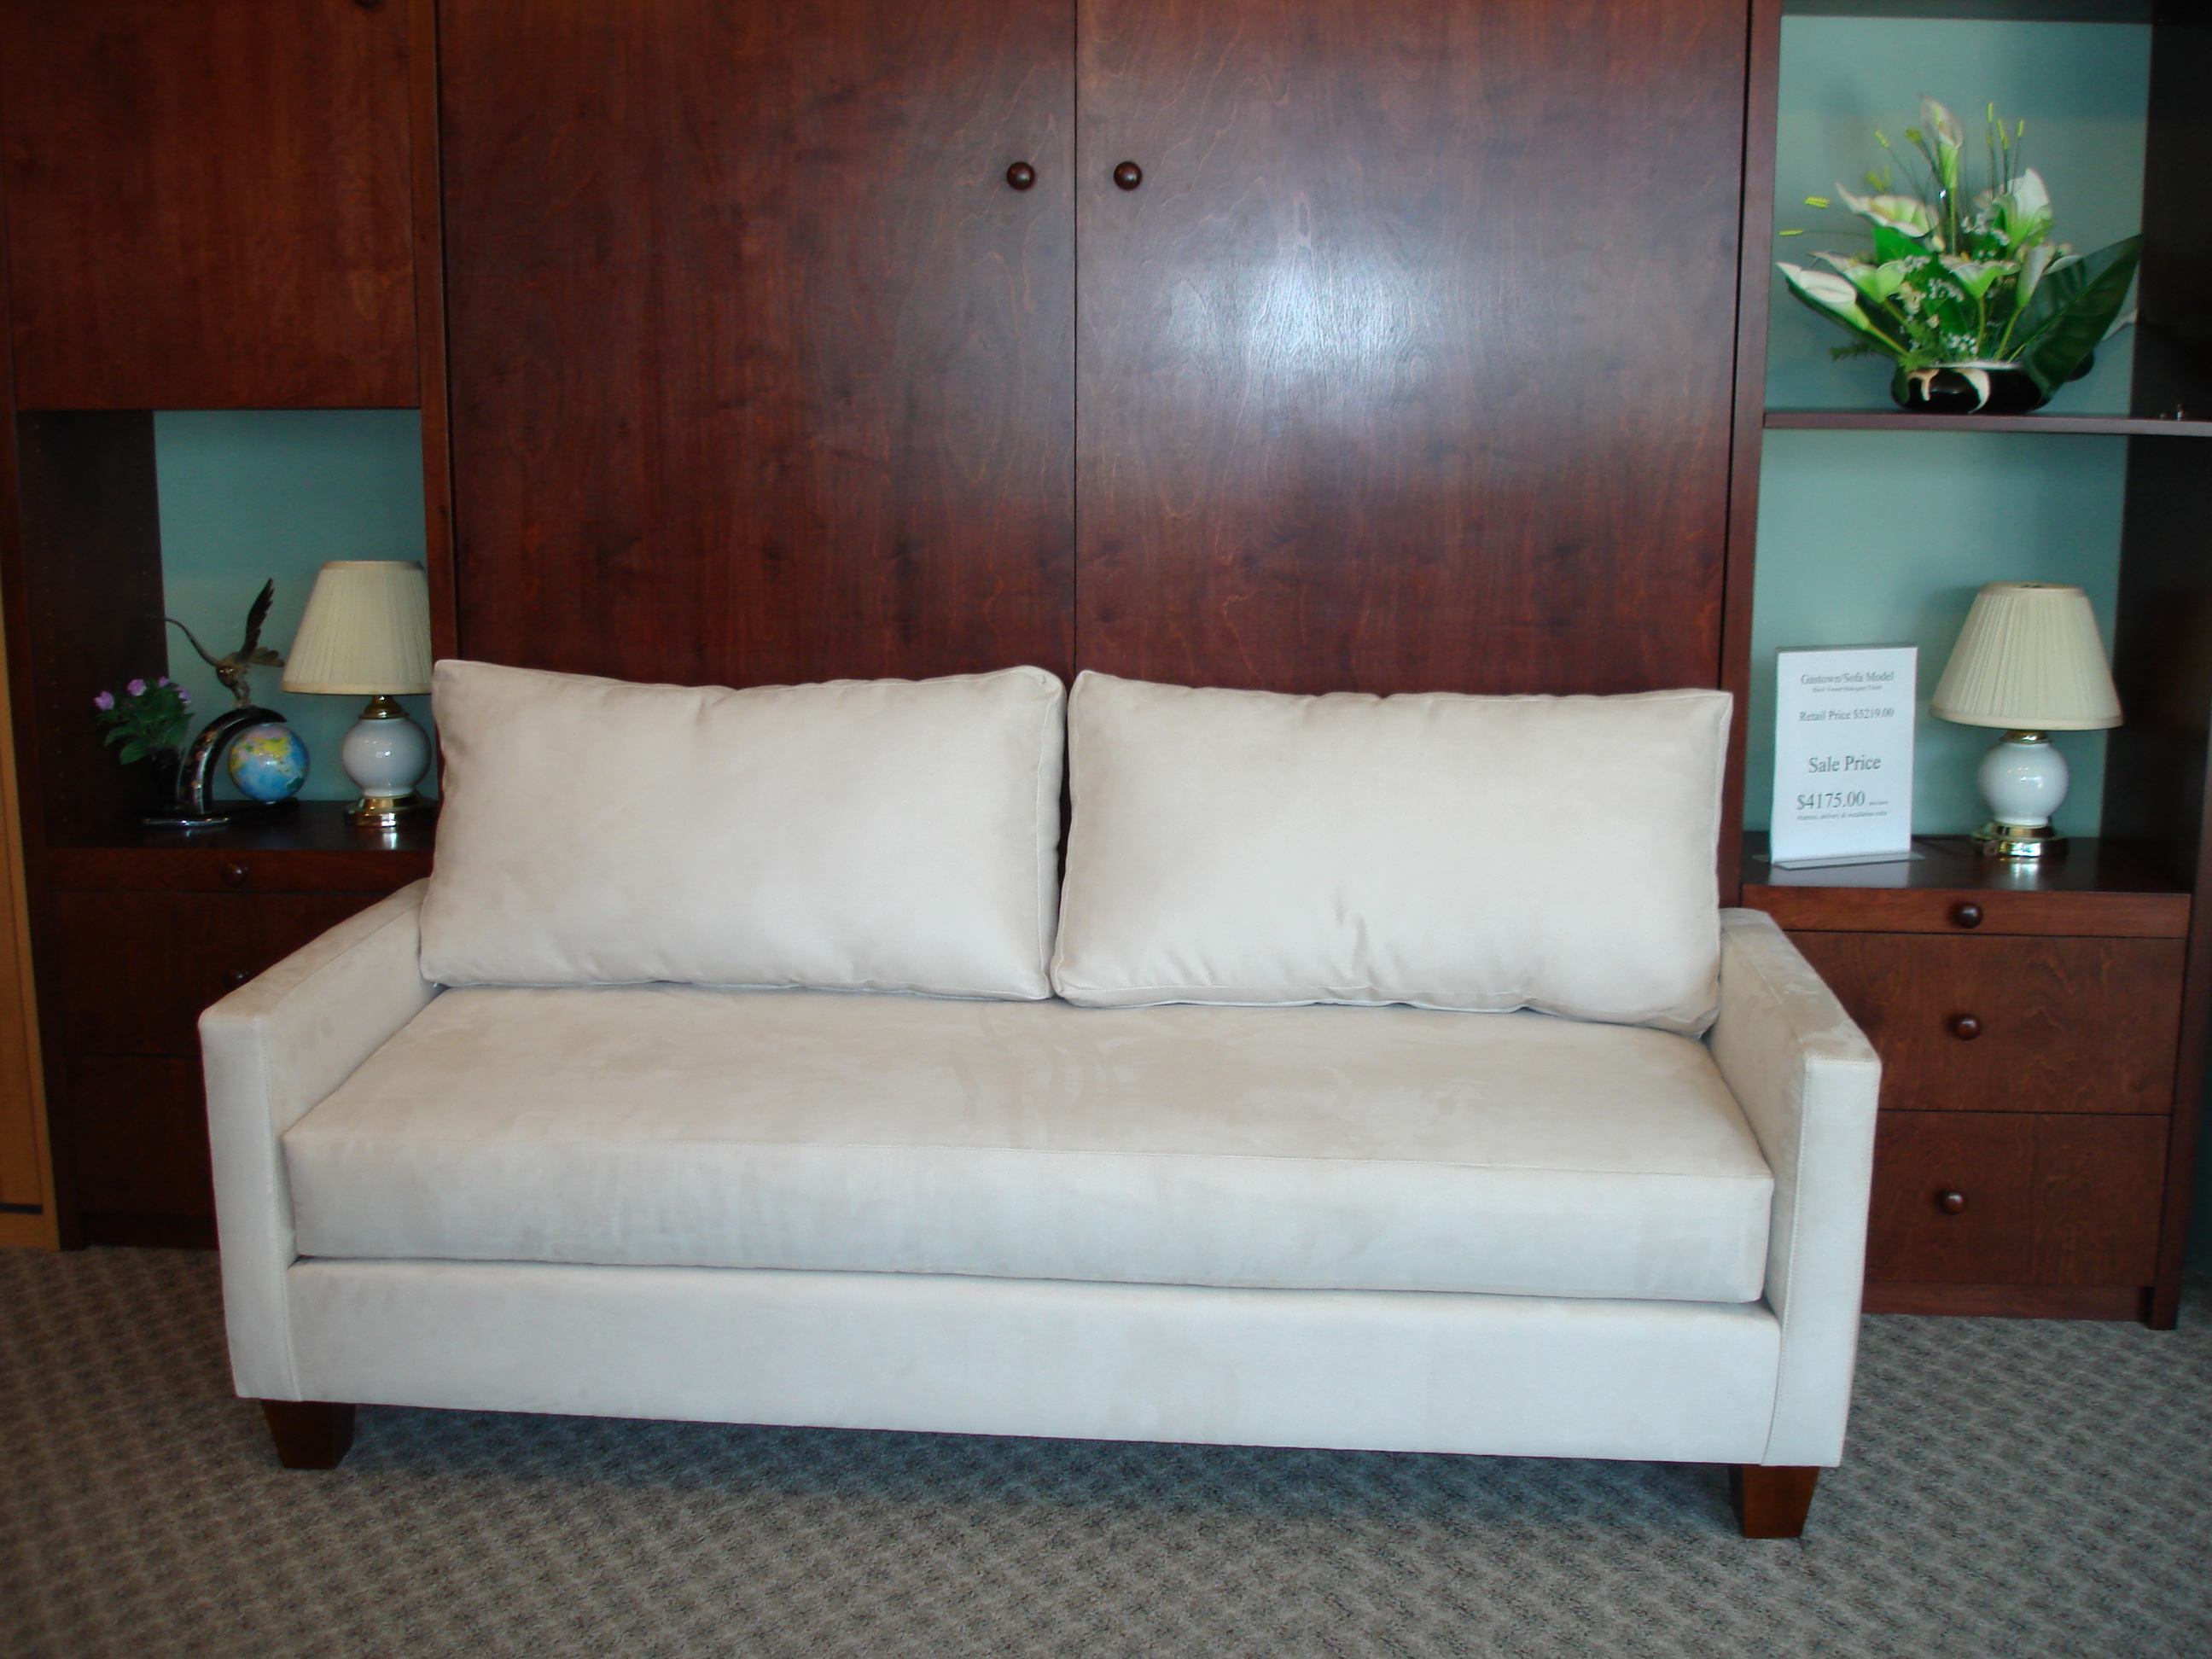 diy murphy bed sofa white rattan garden set couch roole